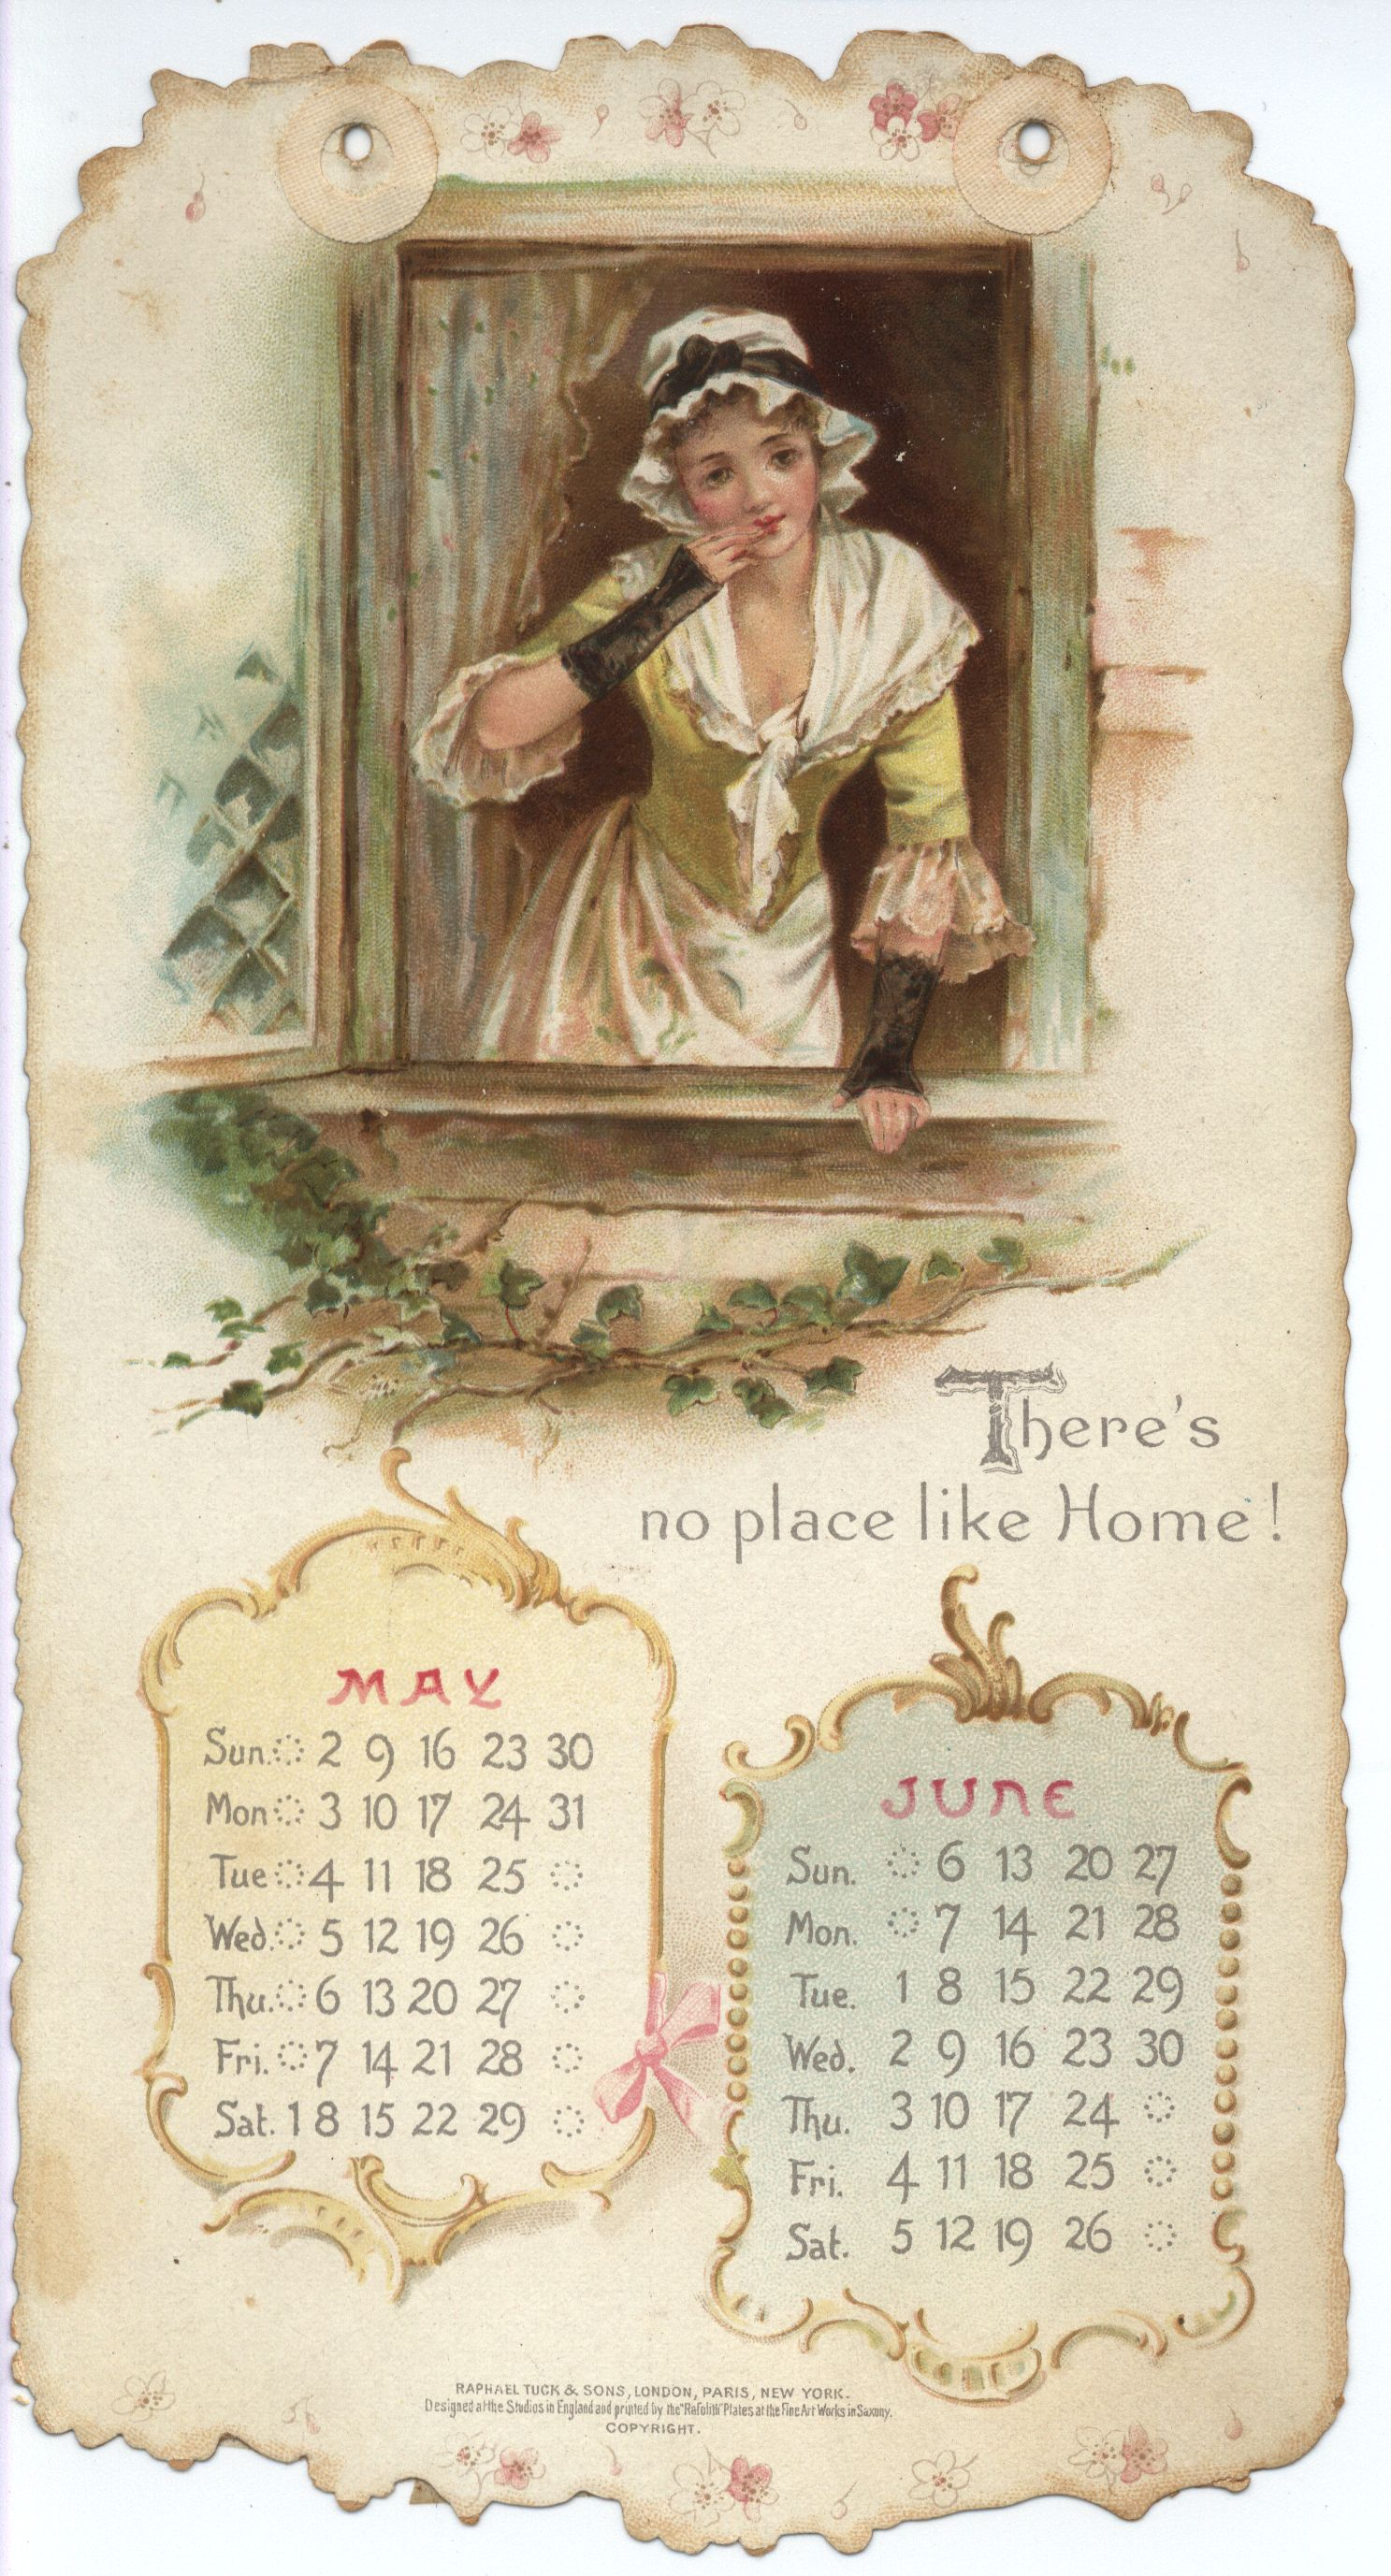 Home Sweet Home Calendar For 1897 Tuckdb Ephemera